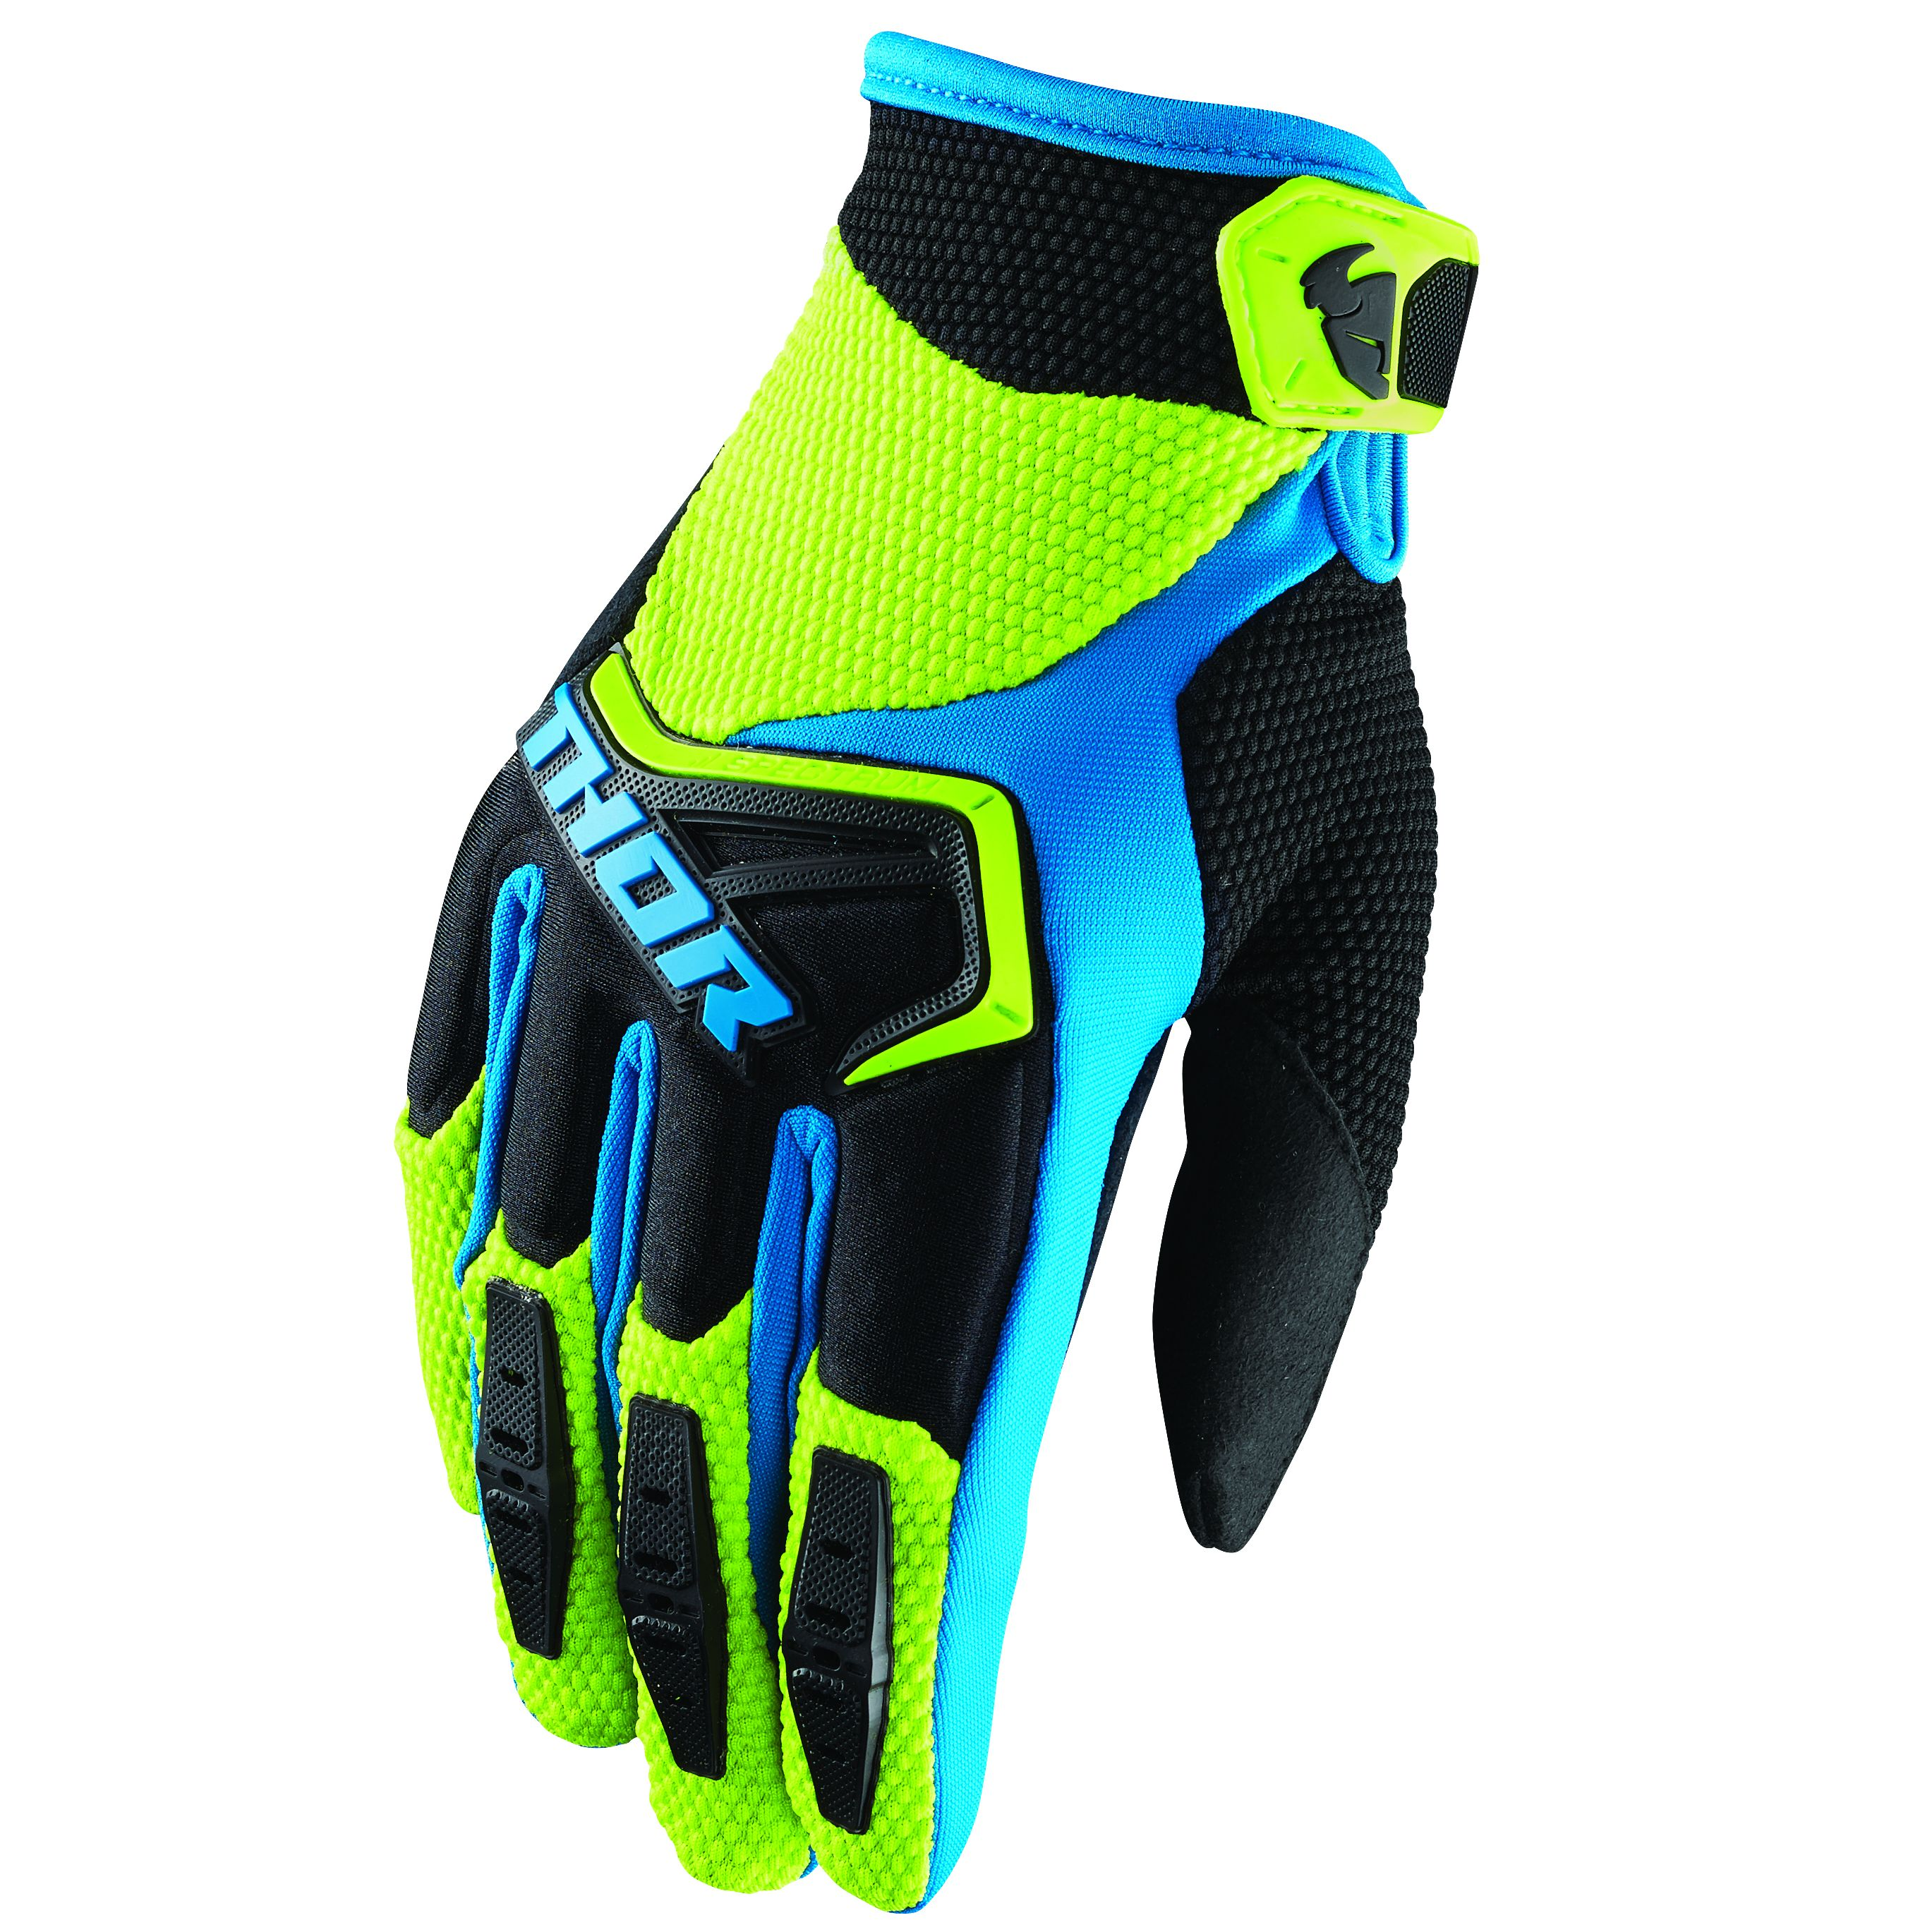 Gants cross Thor SPECTRUM GREEN BLACK BLUE 2019